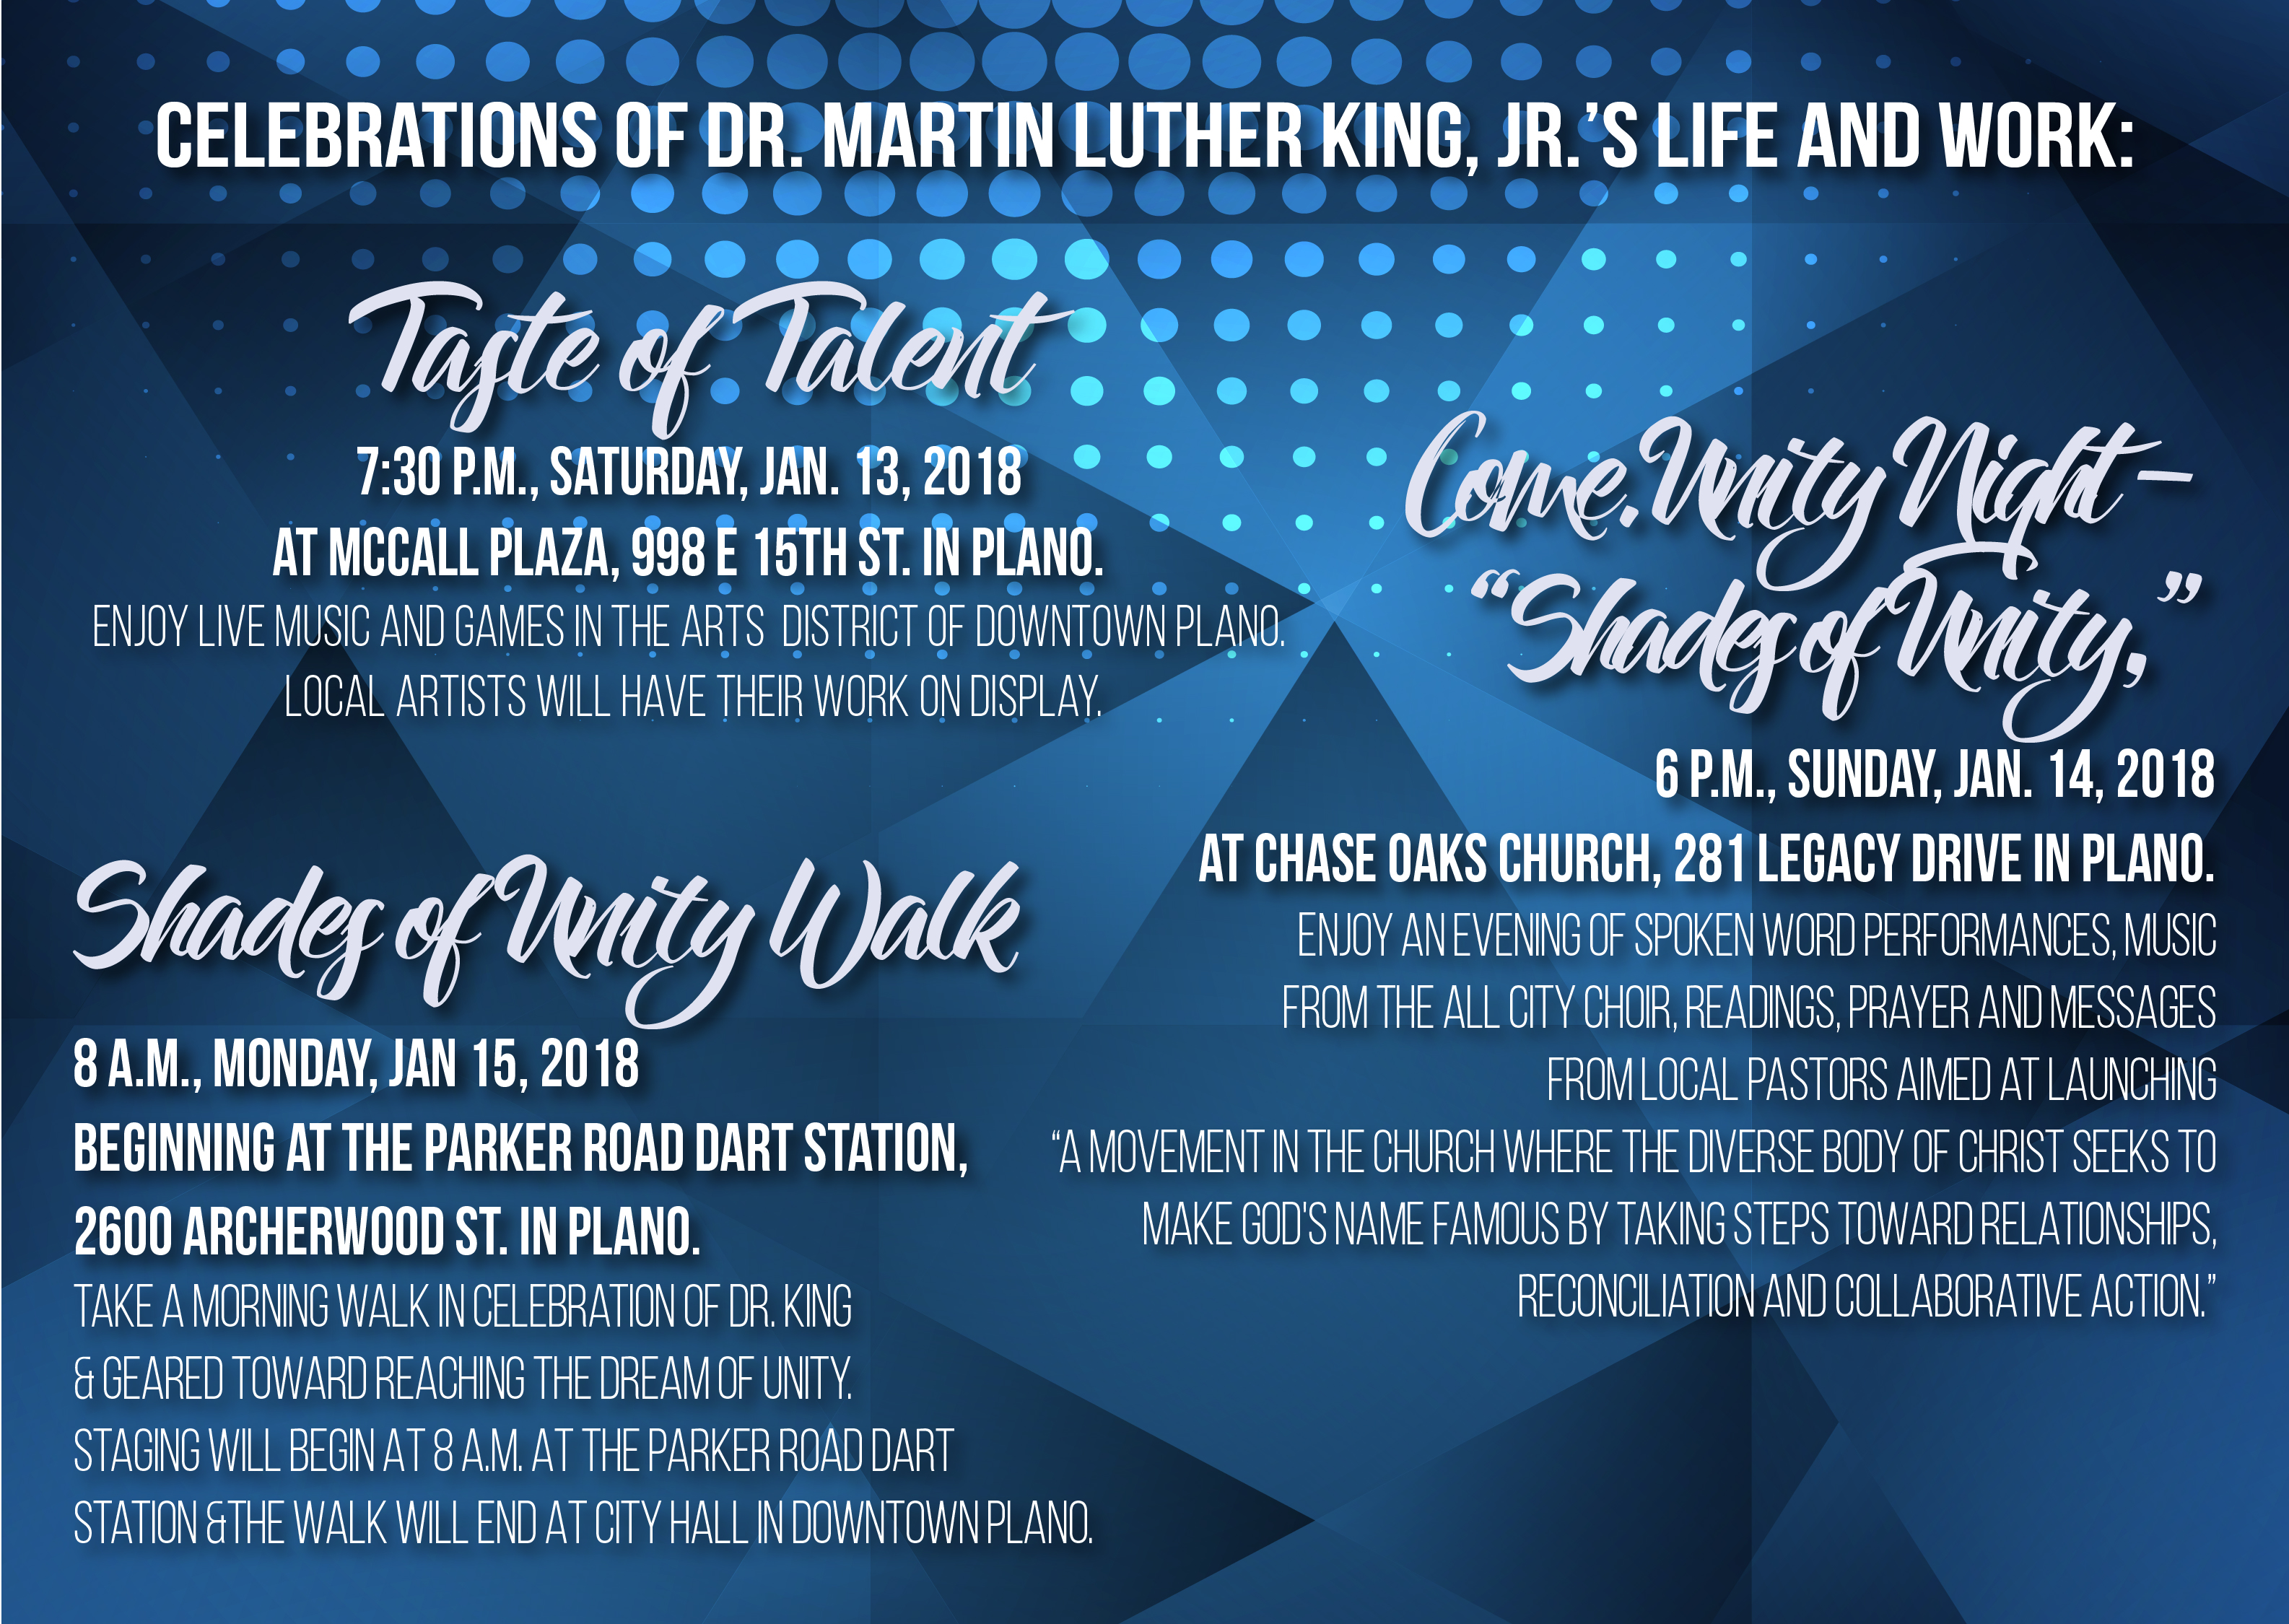 MLK Events-01